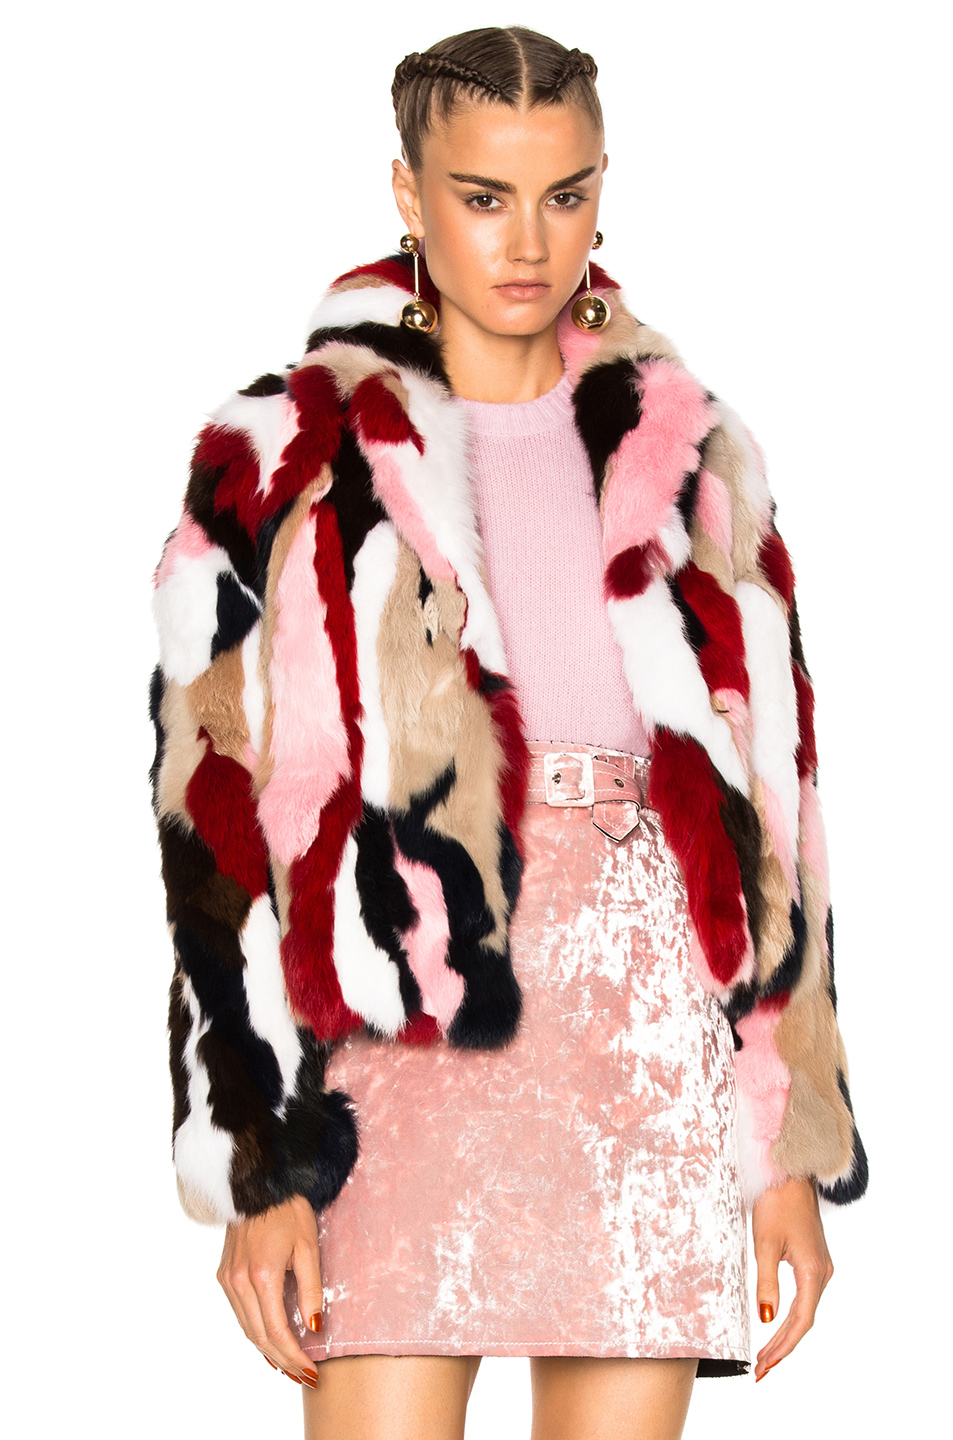 MSGM Fur Jacket in Pink,Neutrals,Abstract